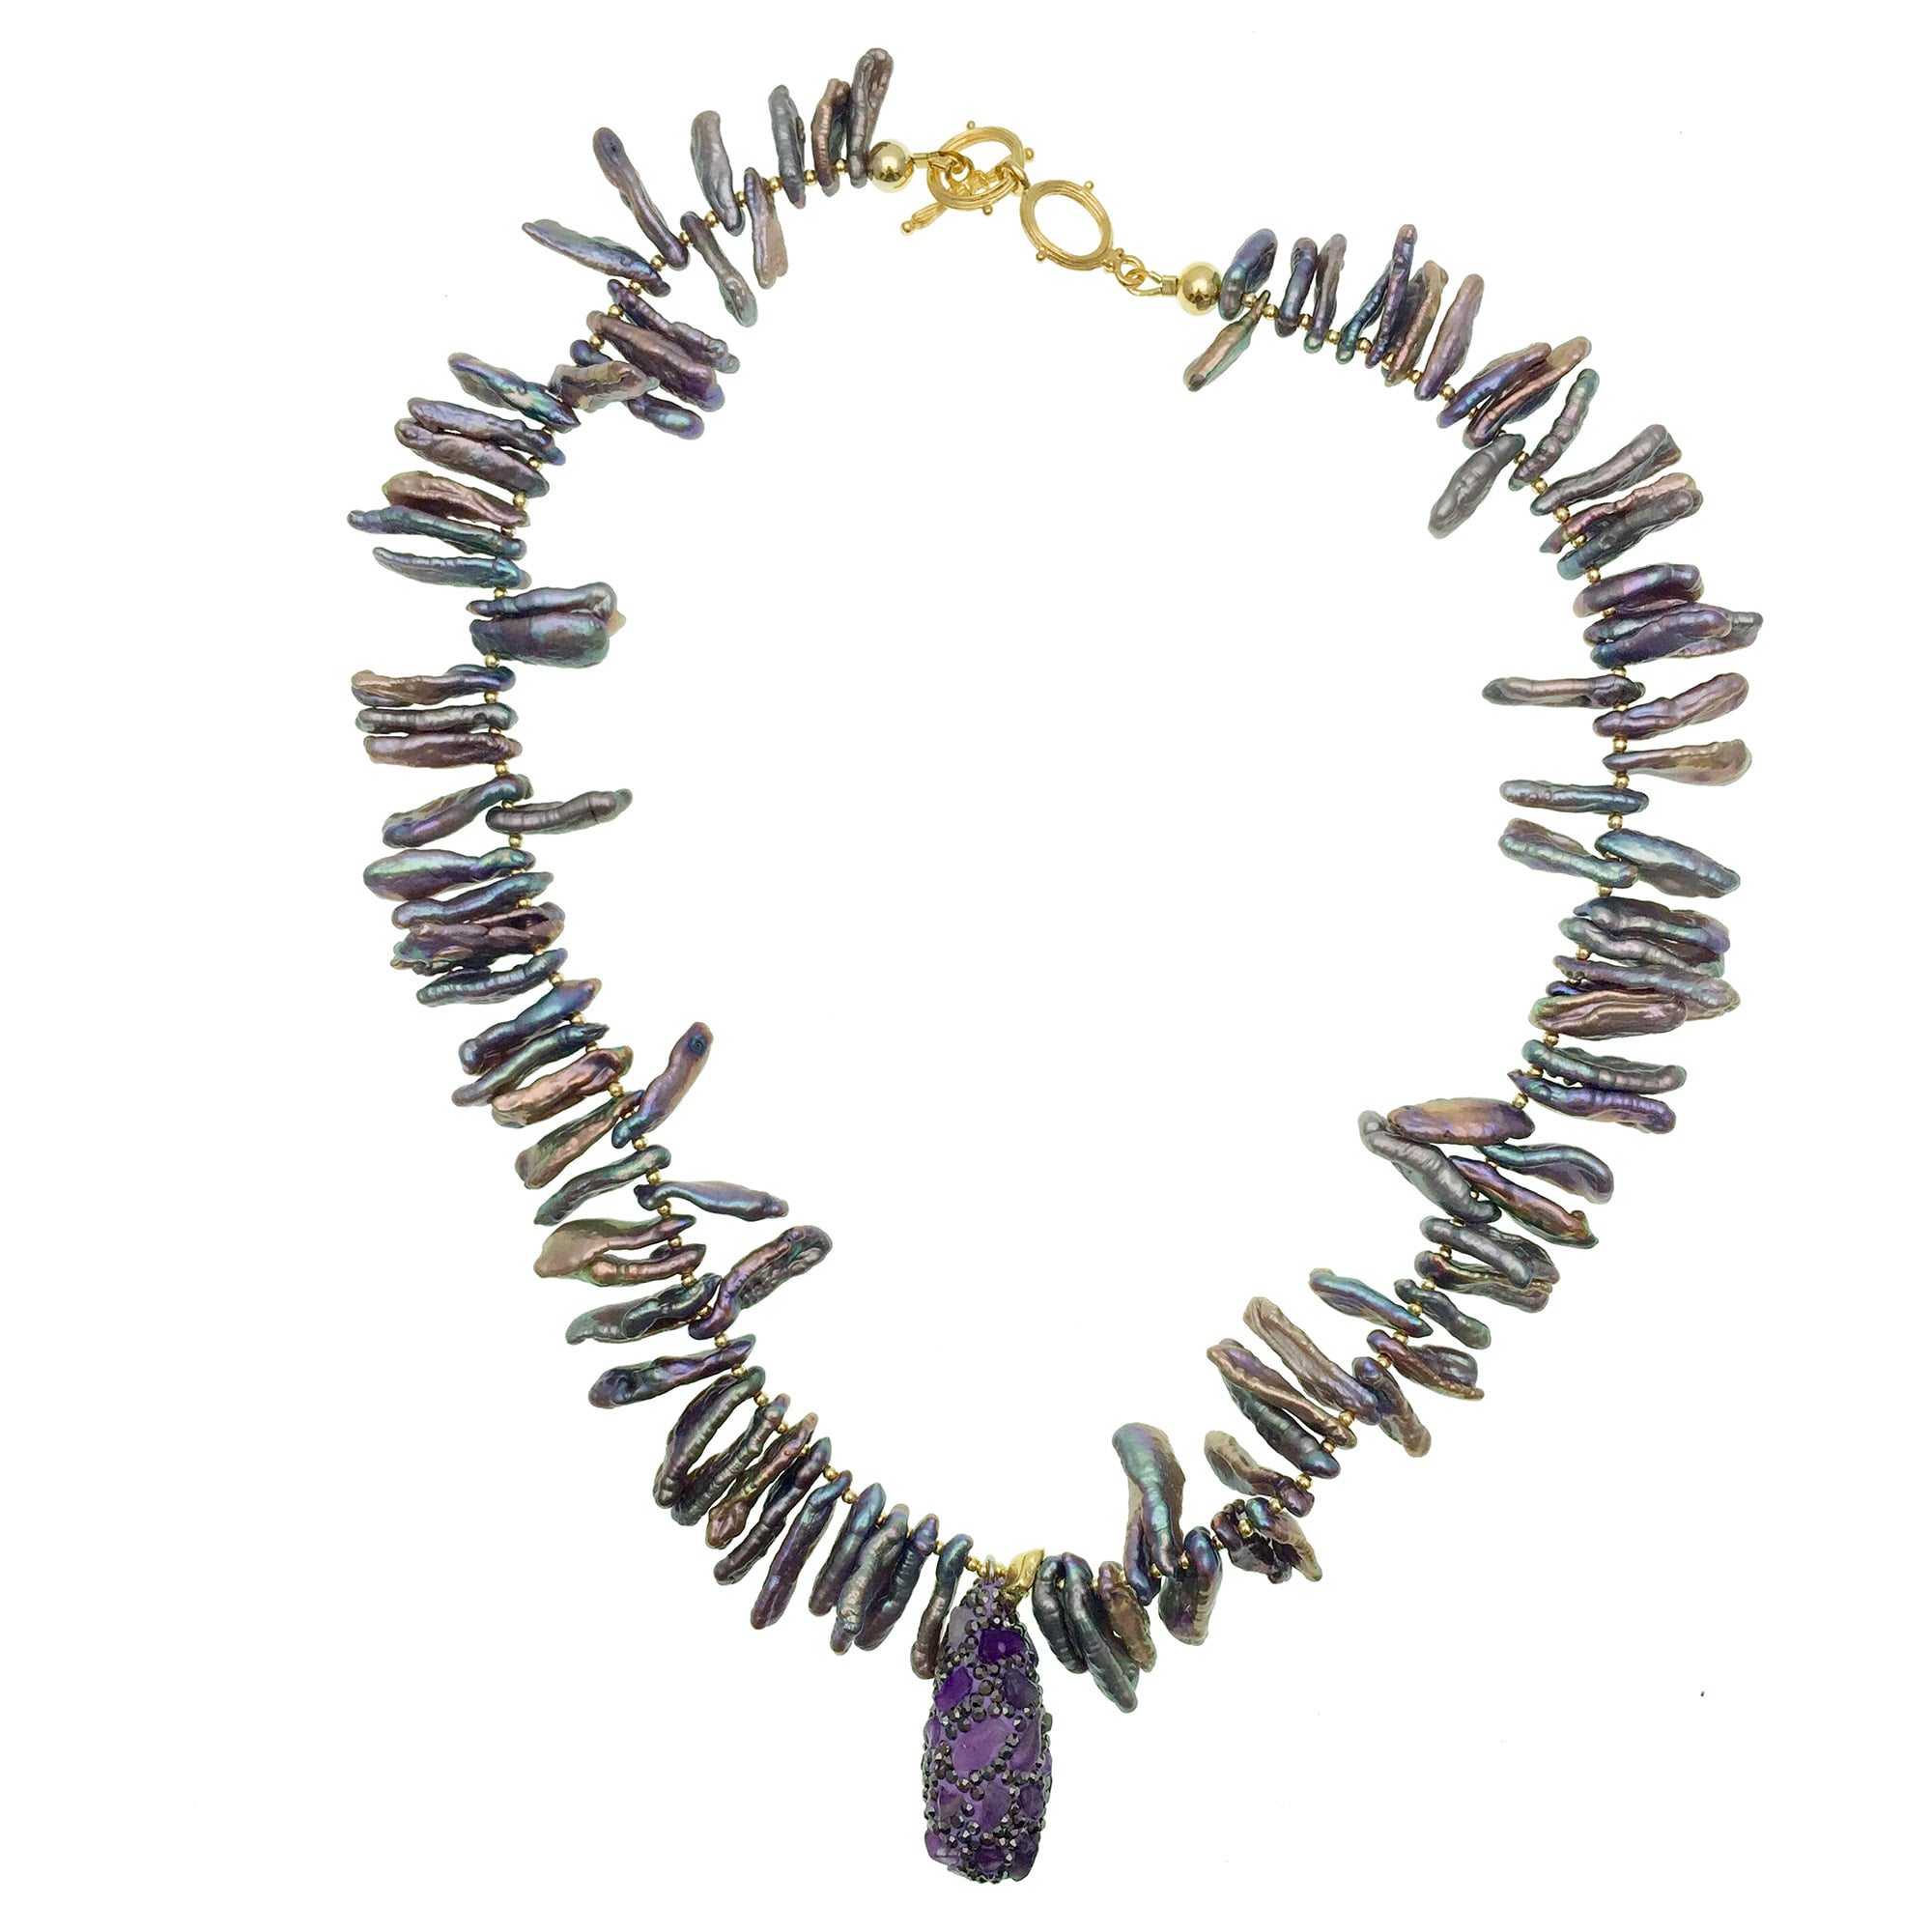 Freeform Purple Pearls with Inlaid Charm Necklace - Shopidpearl